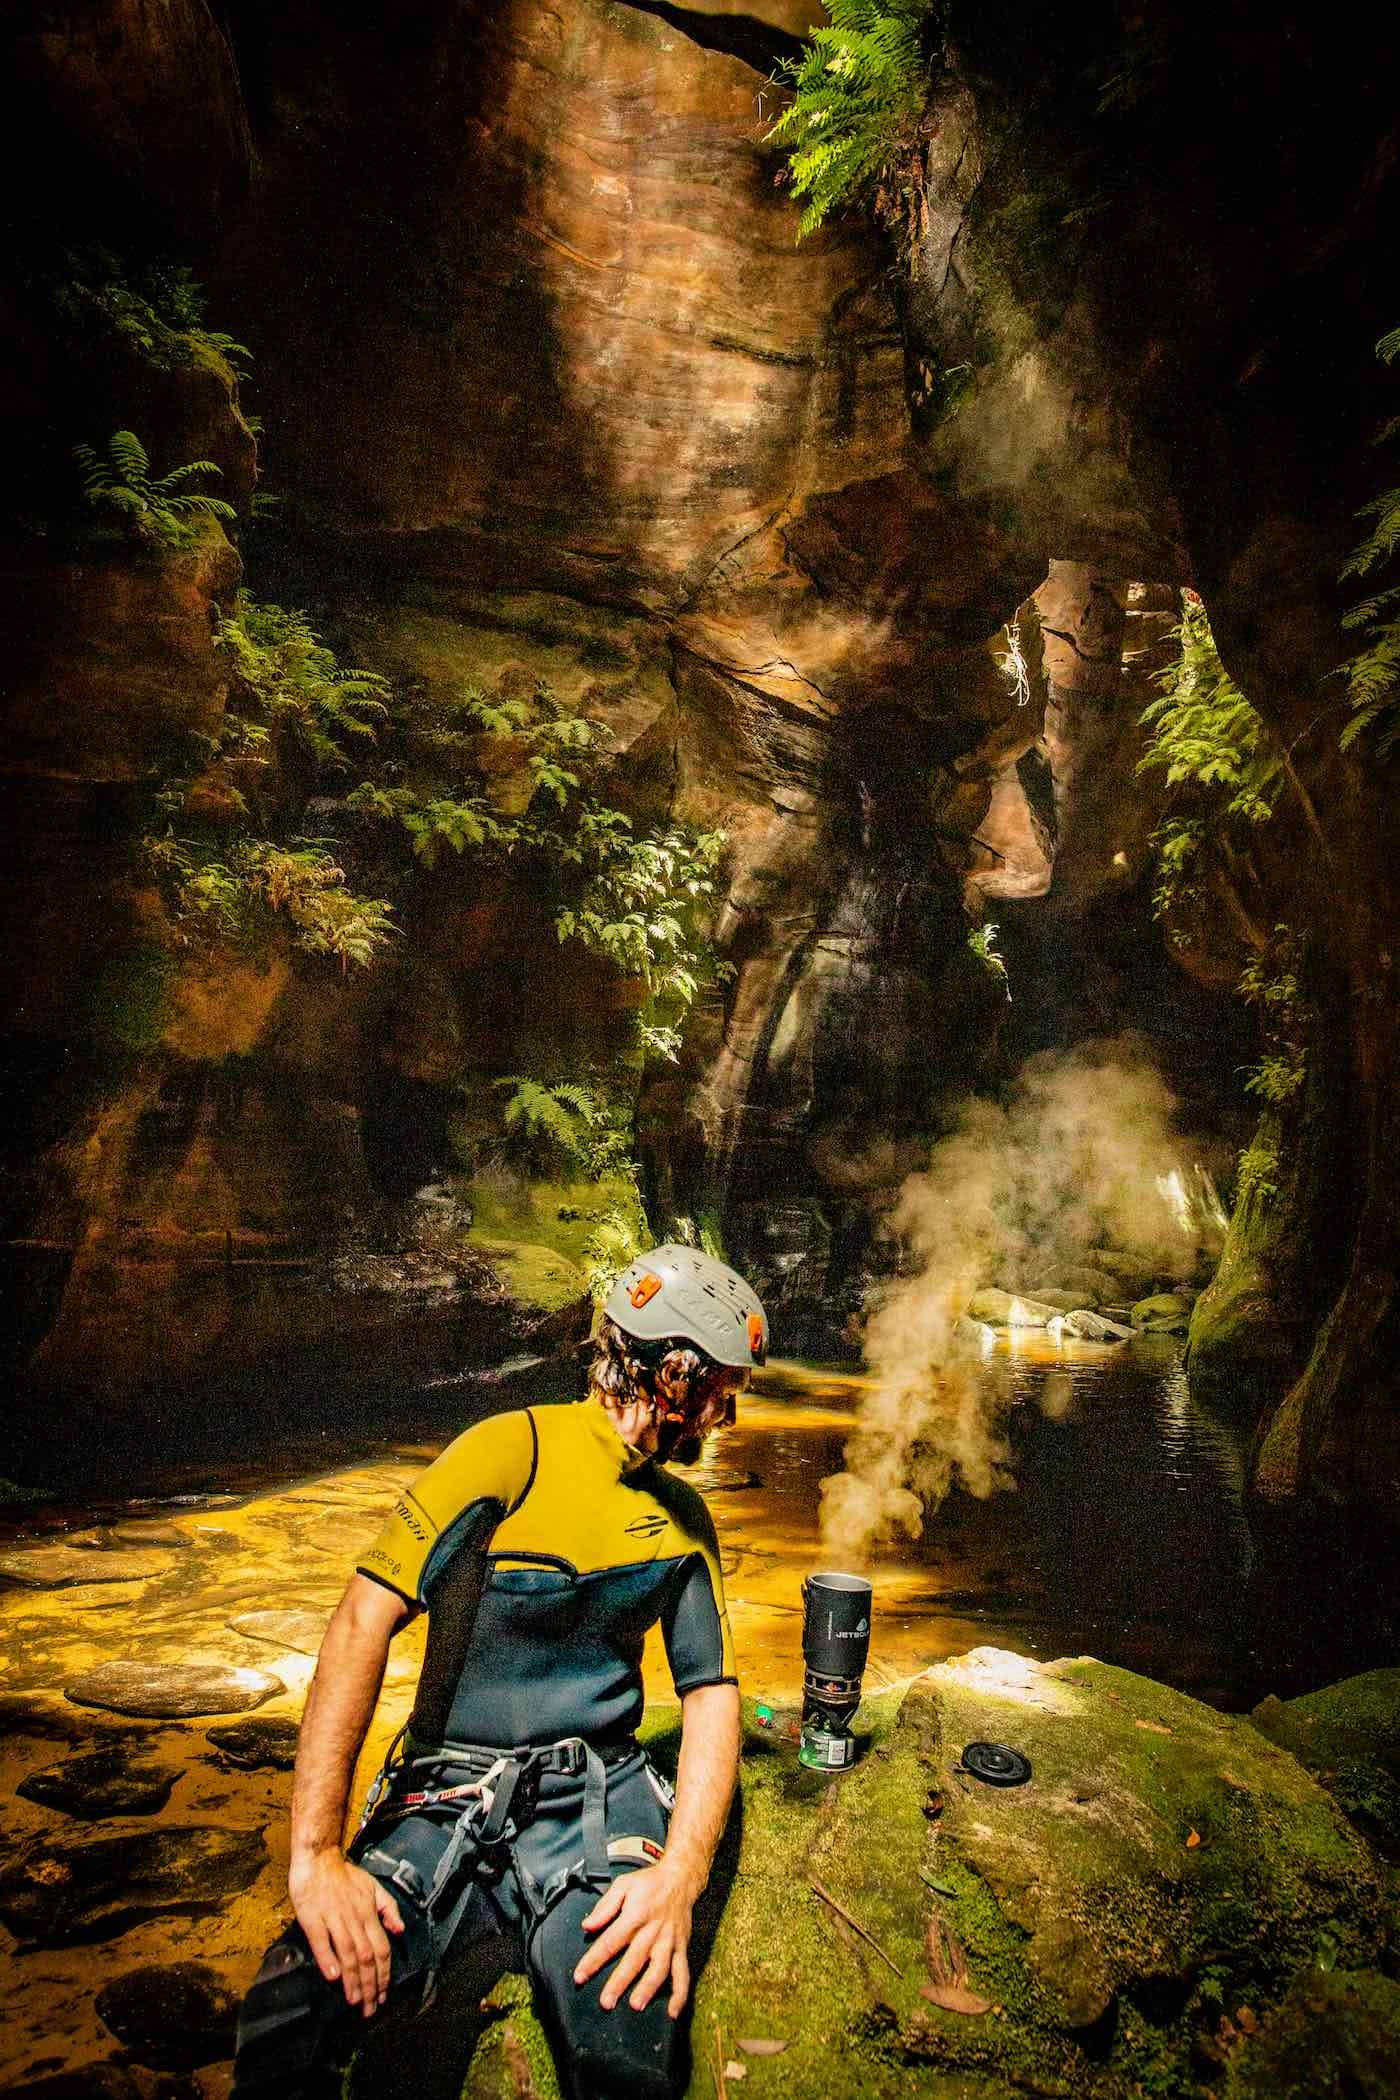 Canyoning In Search Of A Good Beer Harriet Farkash, Osprey Adventure Grant, campsite, blue mountains, canyon, jet boil